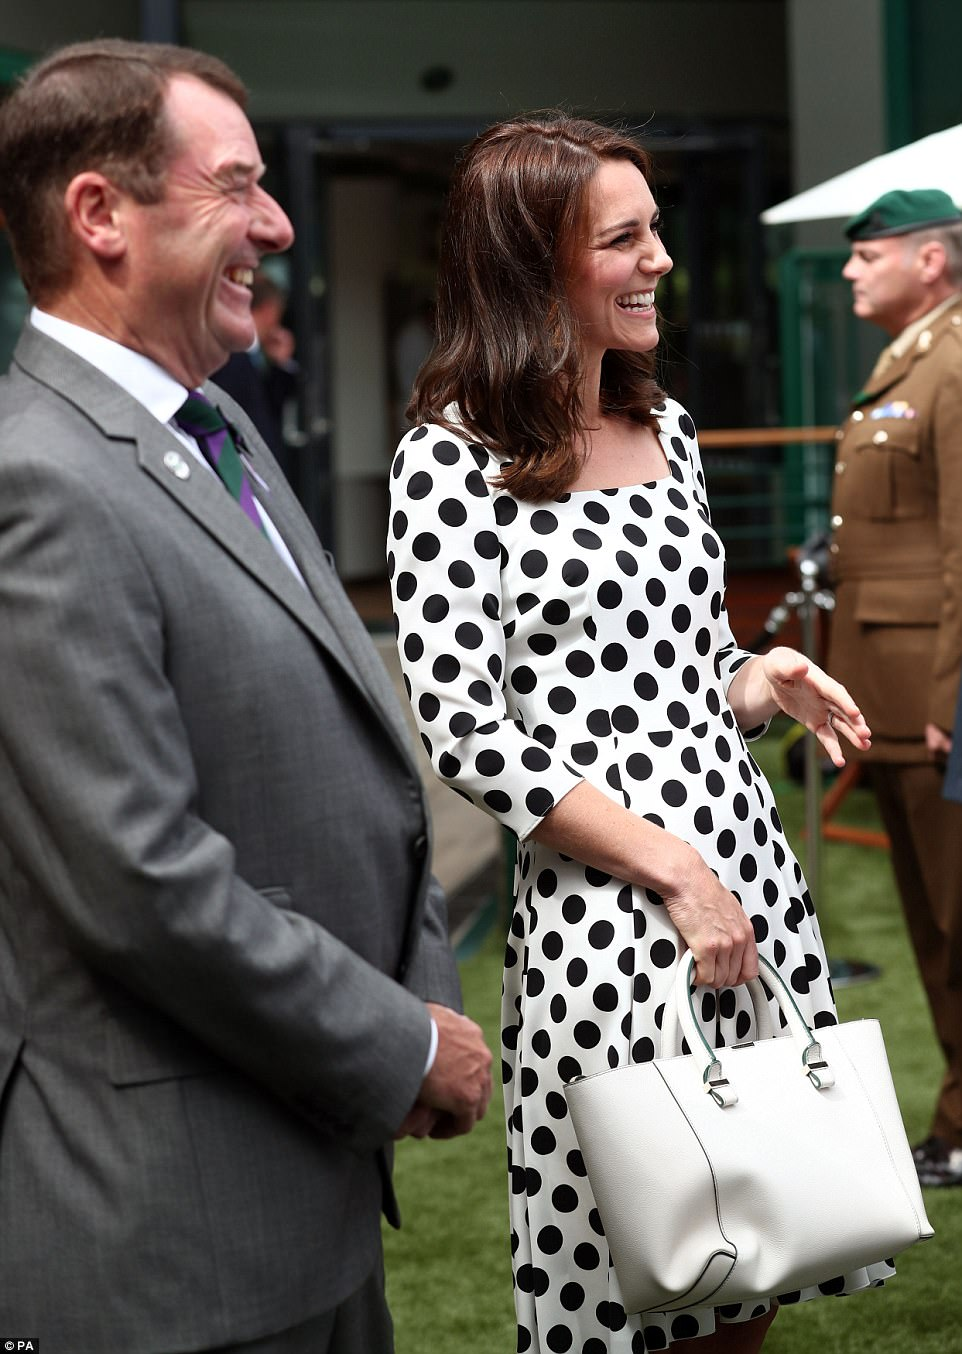 The Duchess of Cambridge, an avid tennis fan, was in great spirits as she chatted to service personnel at Wimbledon this morning head of Andy Murray's match